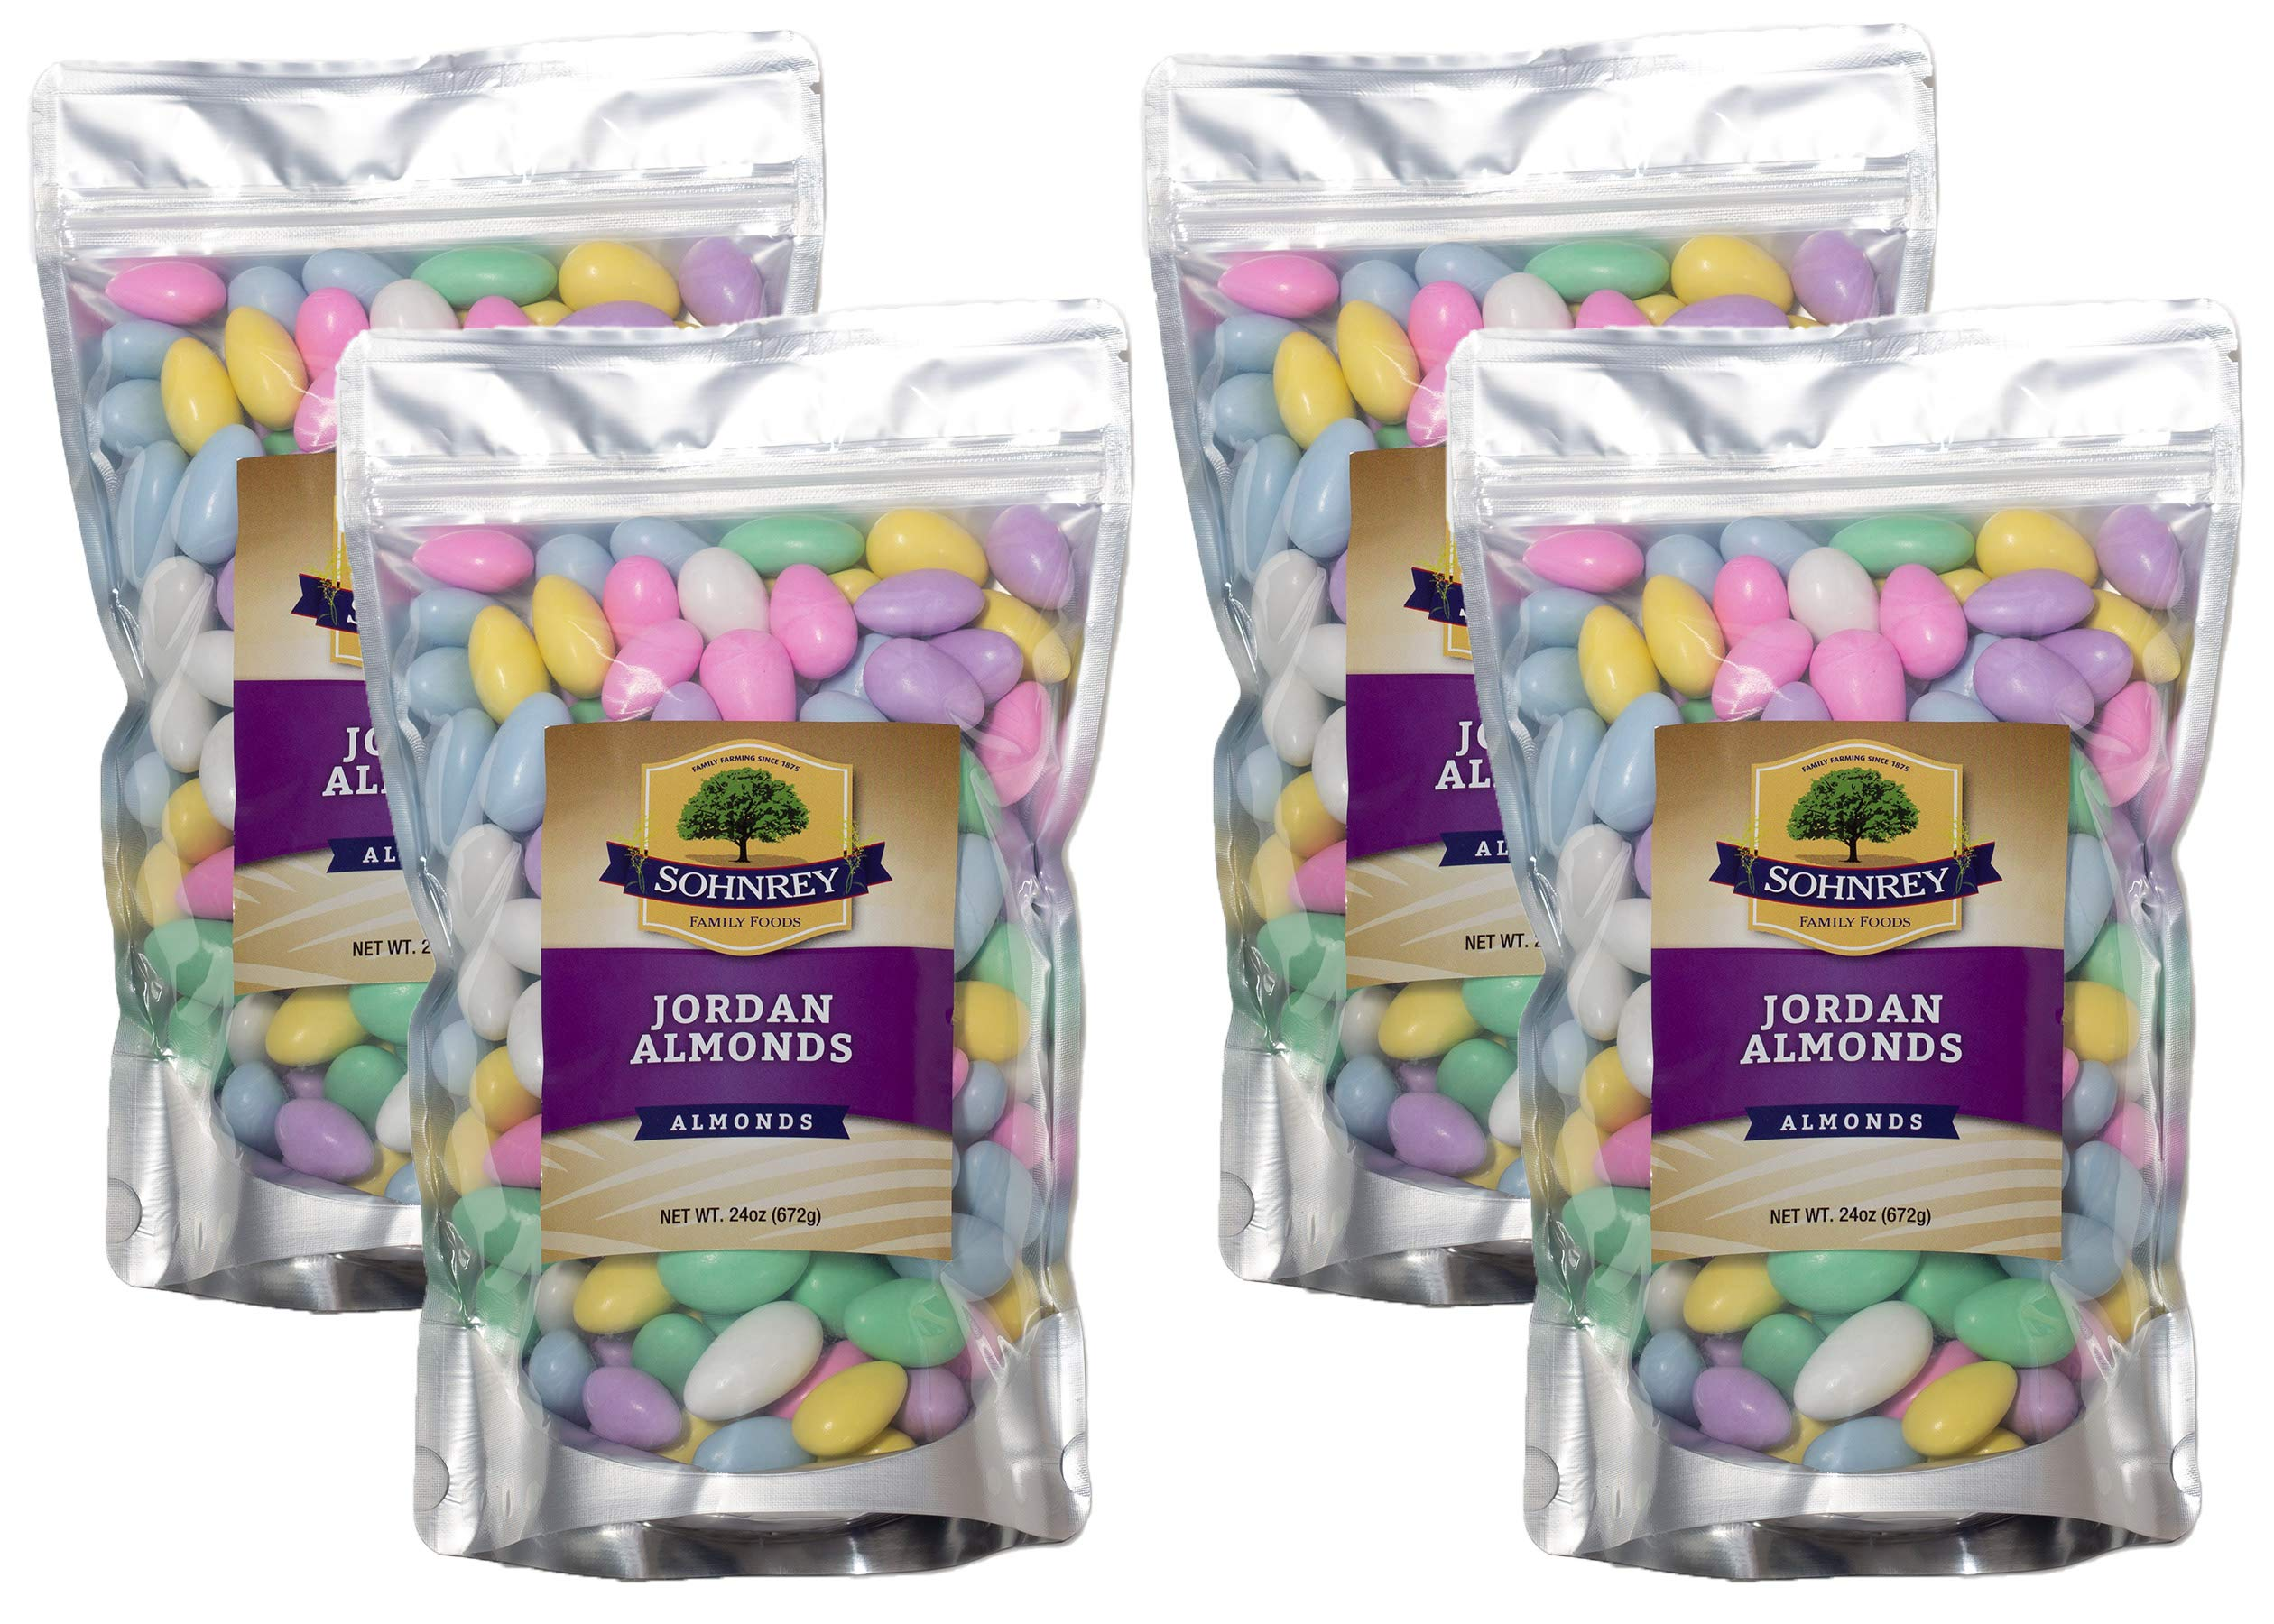 Bulk Jordan Almonds Wedding Holiday Party Favor Candies in Colorful Assorted Pastel Mix 4-Pack of 24 oz pouches (6 Pounds Lbs) by Sohnrey Family Foods by Sohnrey Family Foods